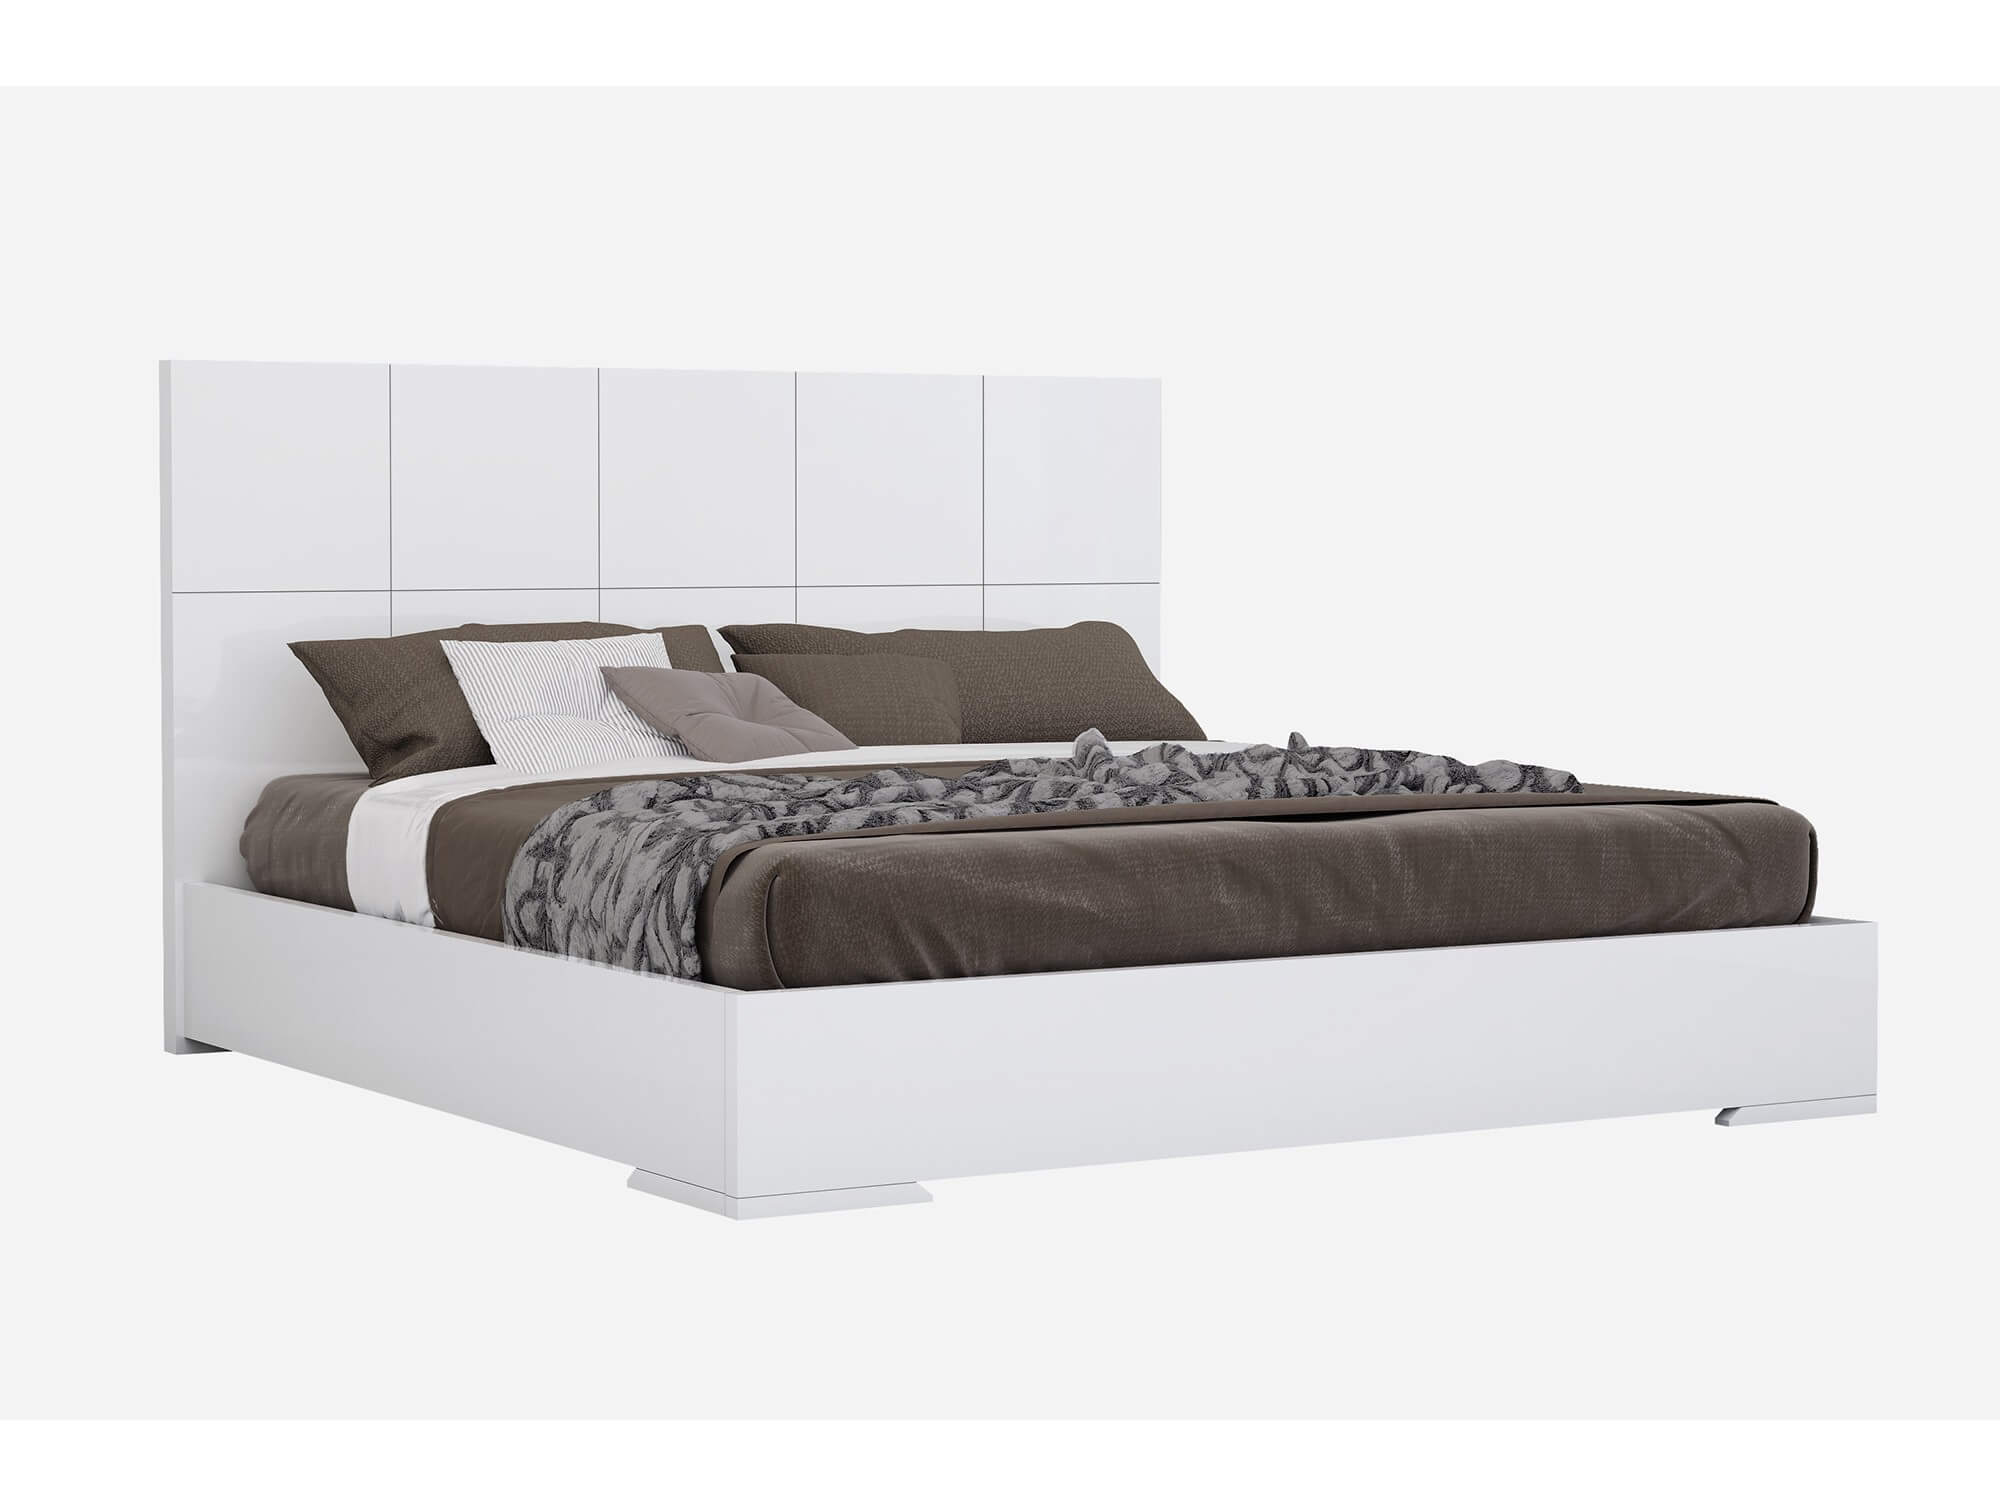 Whiteline Modern Living-Anna Bed-None-MODTEMPO